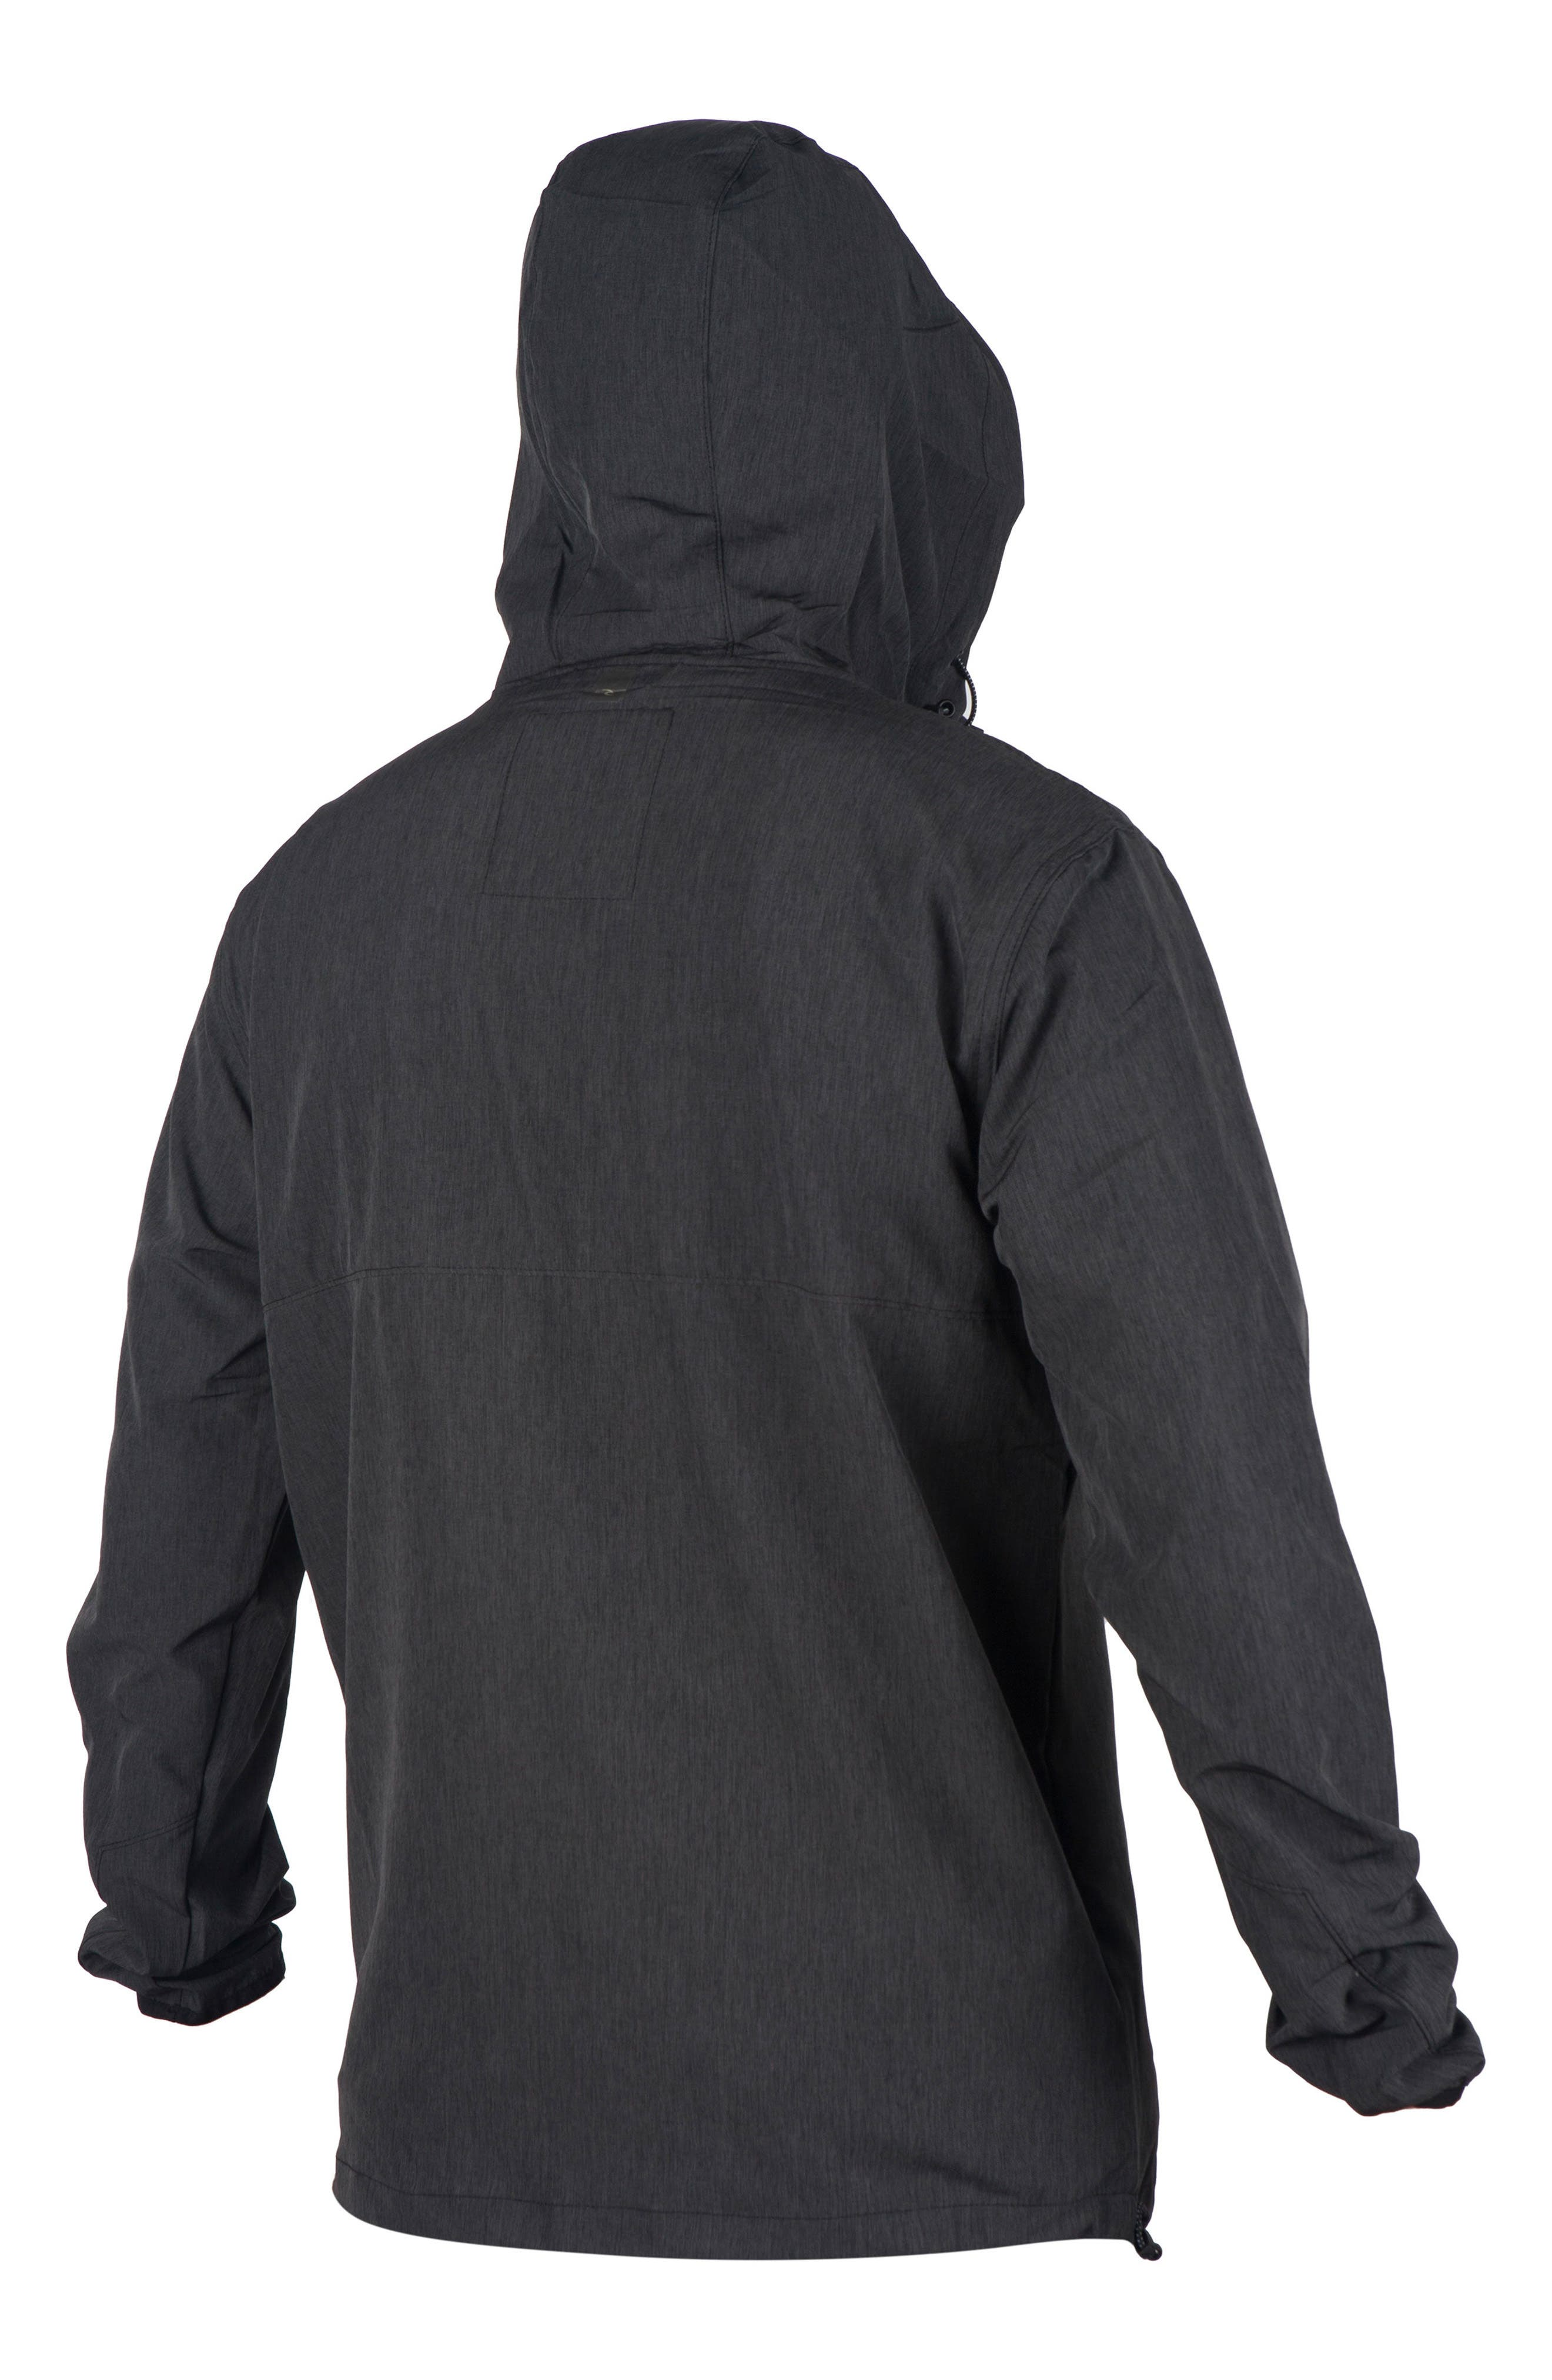 Elite Anti Series Water Repellent Windbreaker,                             Alternate thumbnail 2, color,                             001